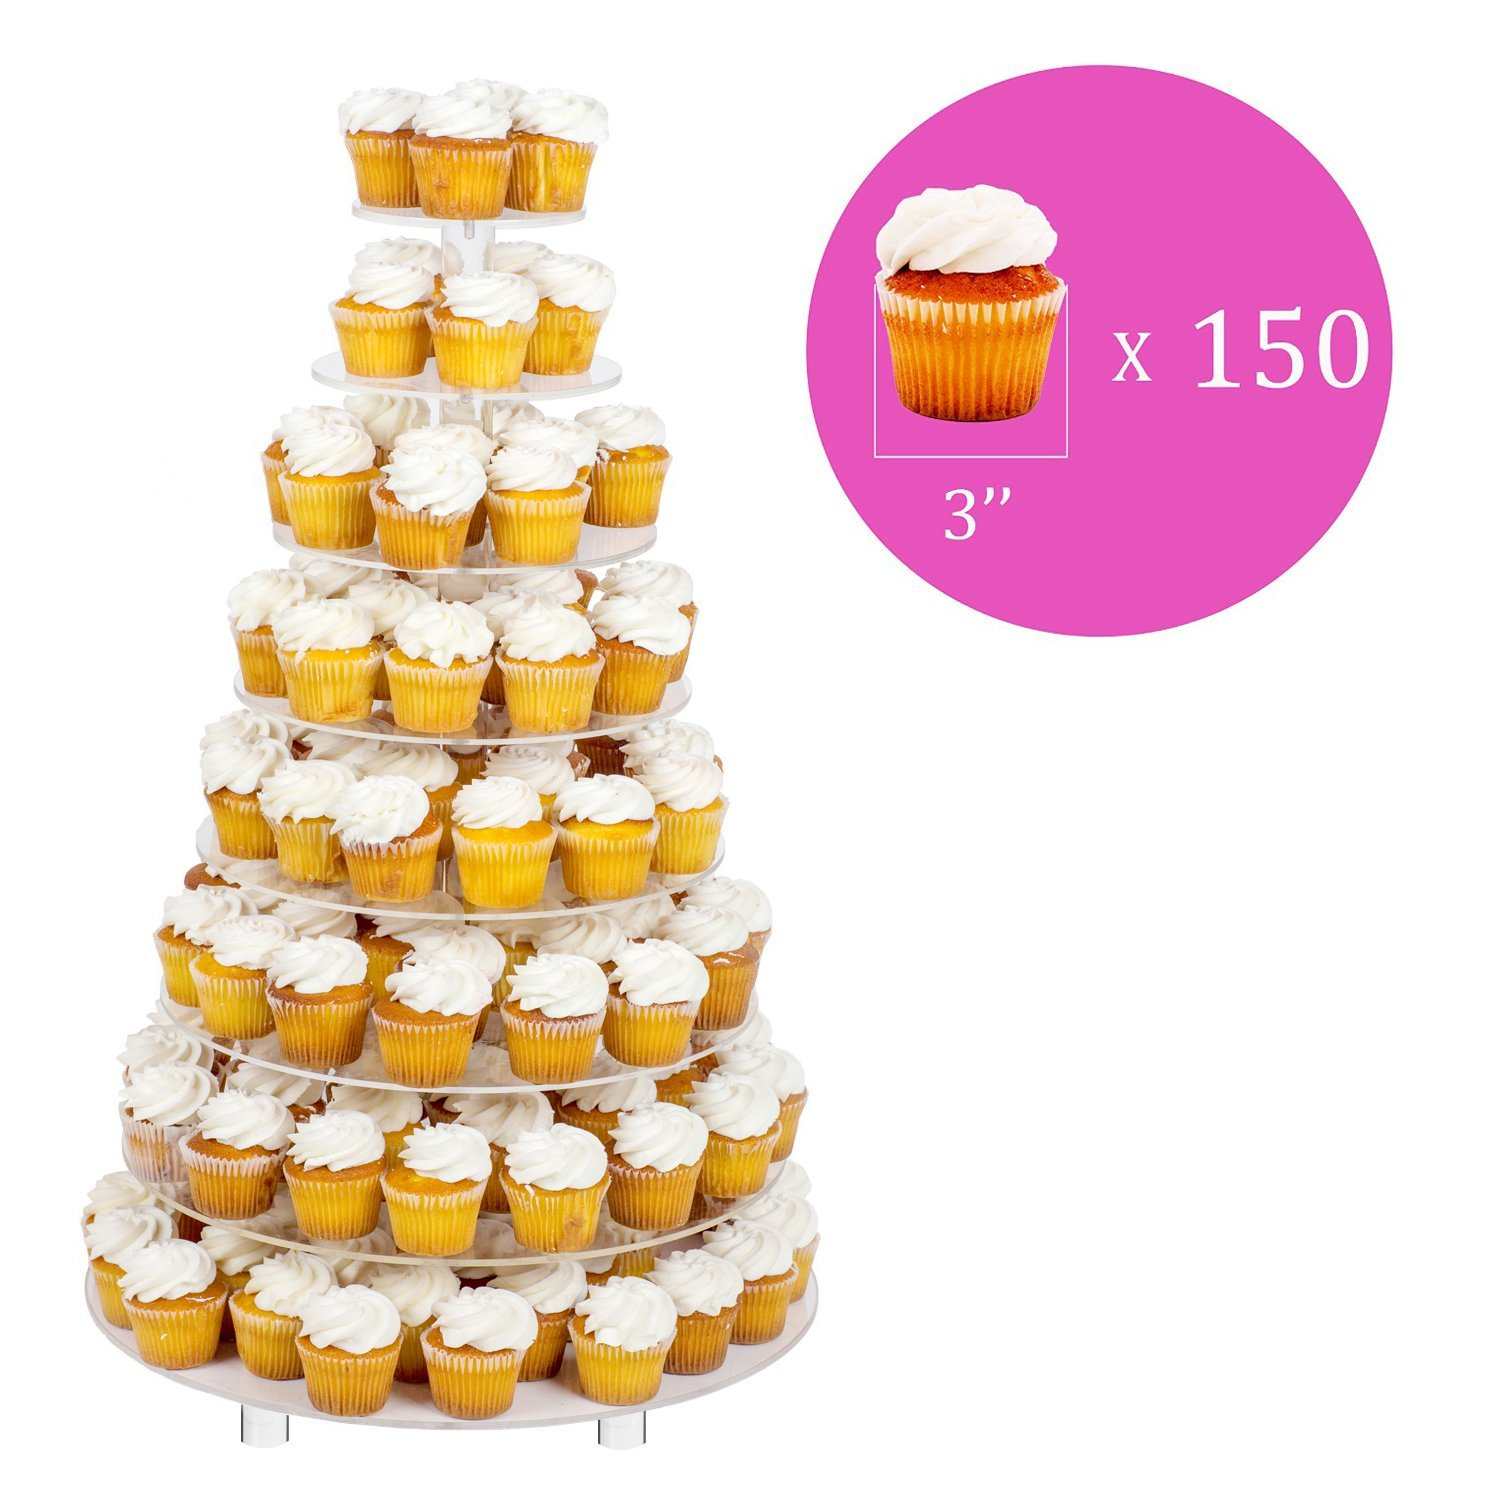 Jusalpha 8 Tier Wedding Party Acrylic Round Cake Stand/ Cupcake Stand Tower/ Dessert Stand/ Pastry Serving Platter/ Food Display Stand For Big Event (8RF) by Jusalpha (Image #3)